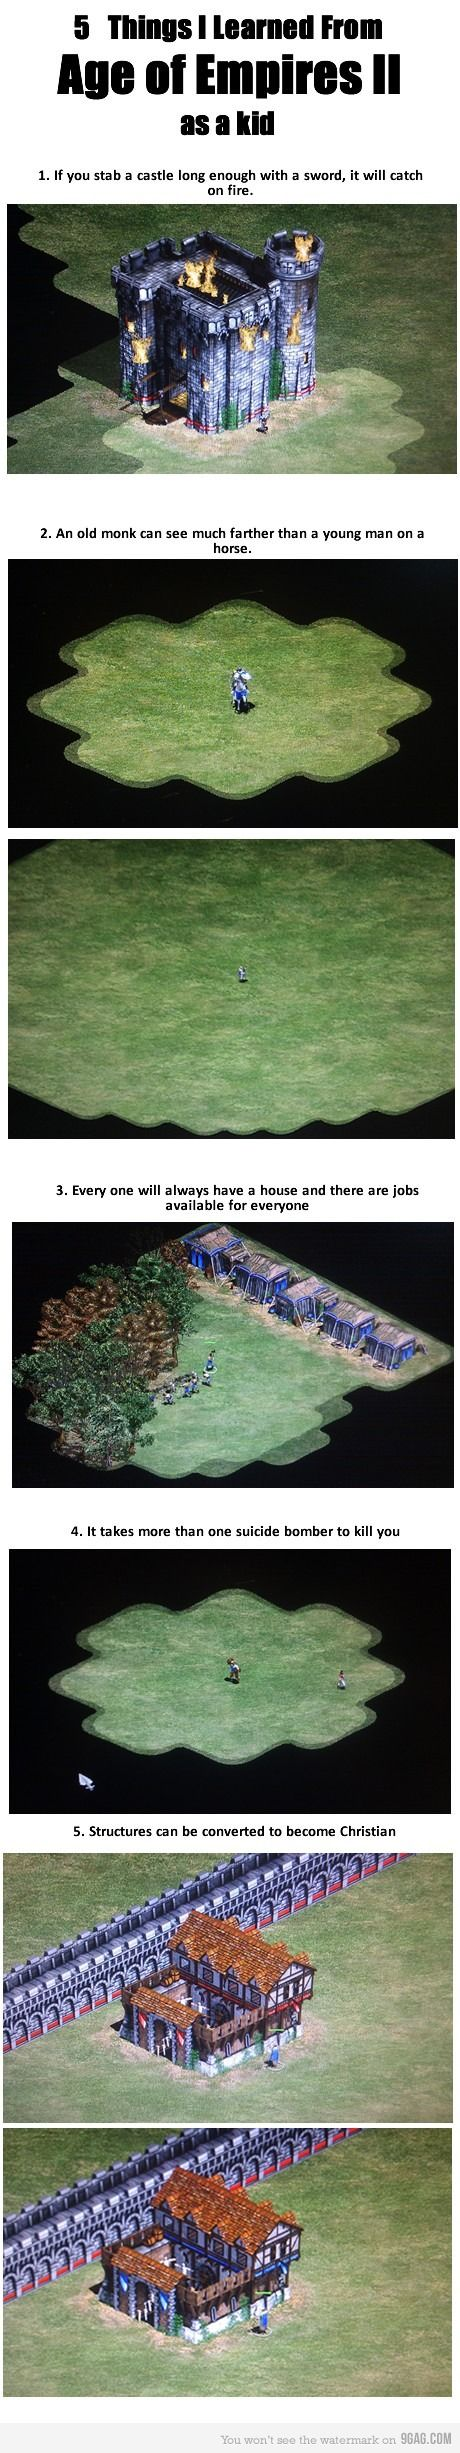 Age of Empires II -- oh that game was awesome. And a little absurd. But mostly awesome.